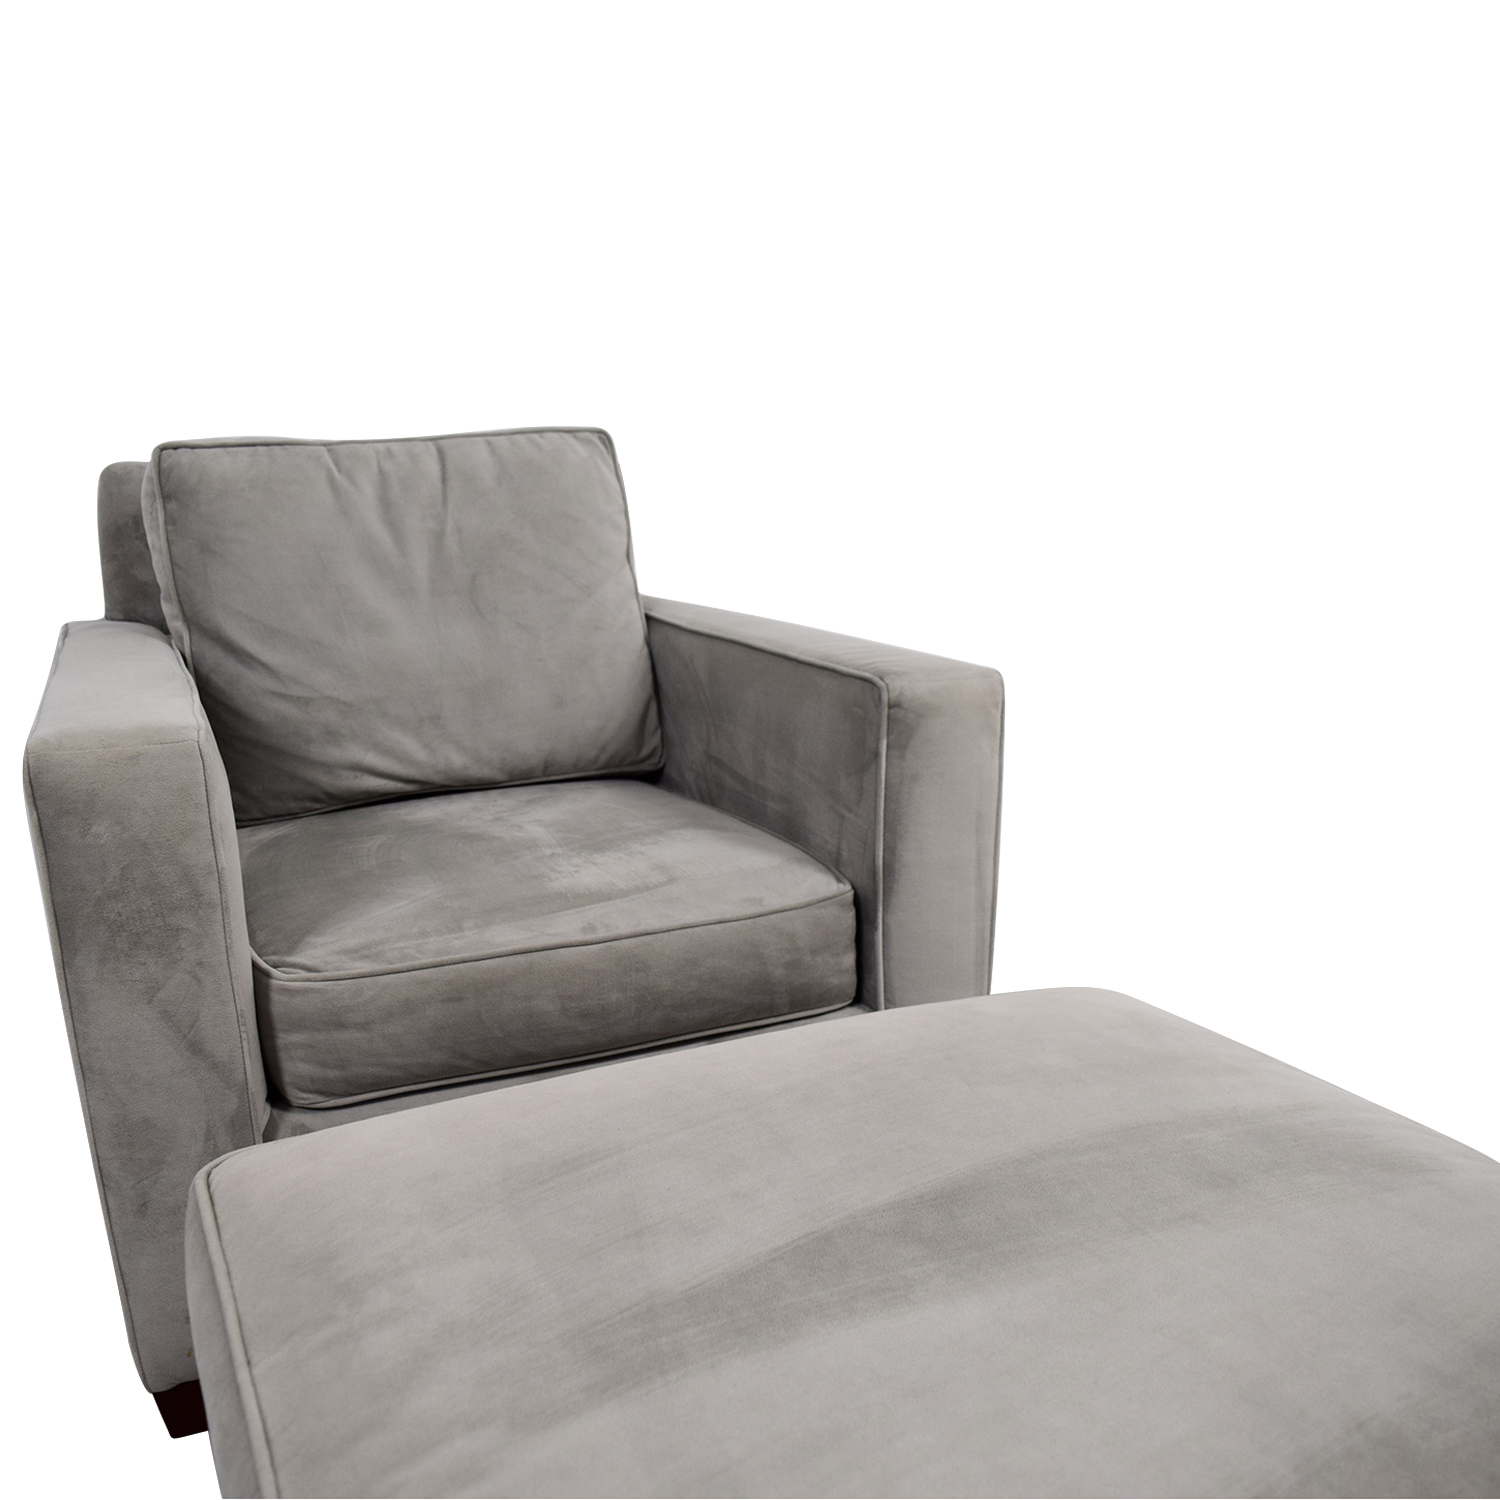 Chair And Ottoman Sale